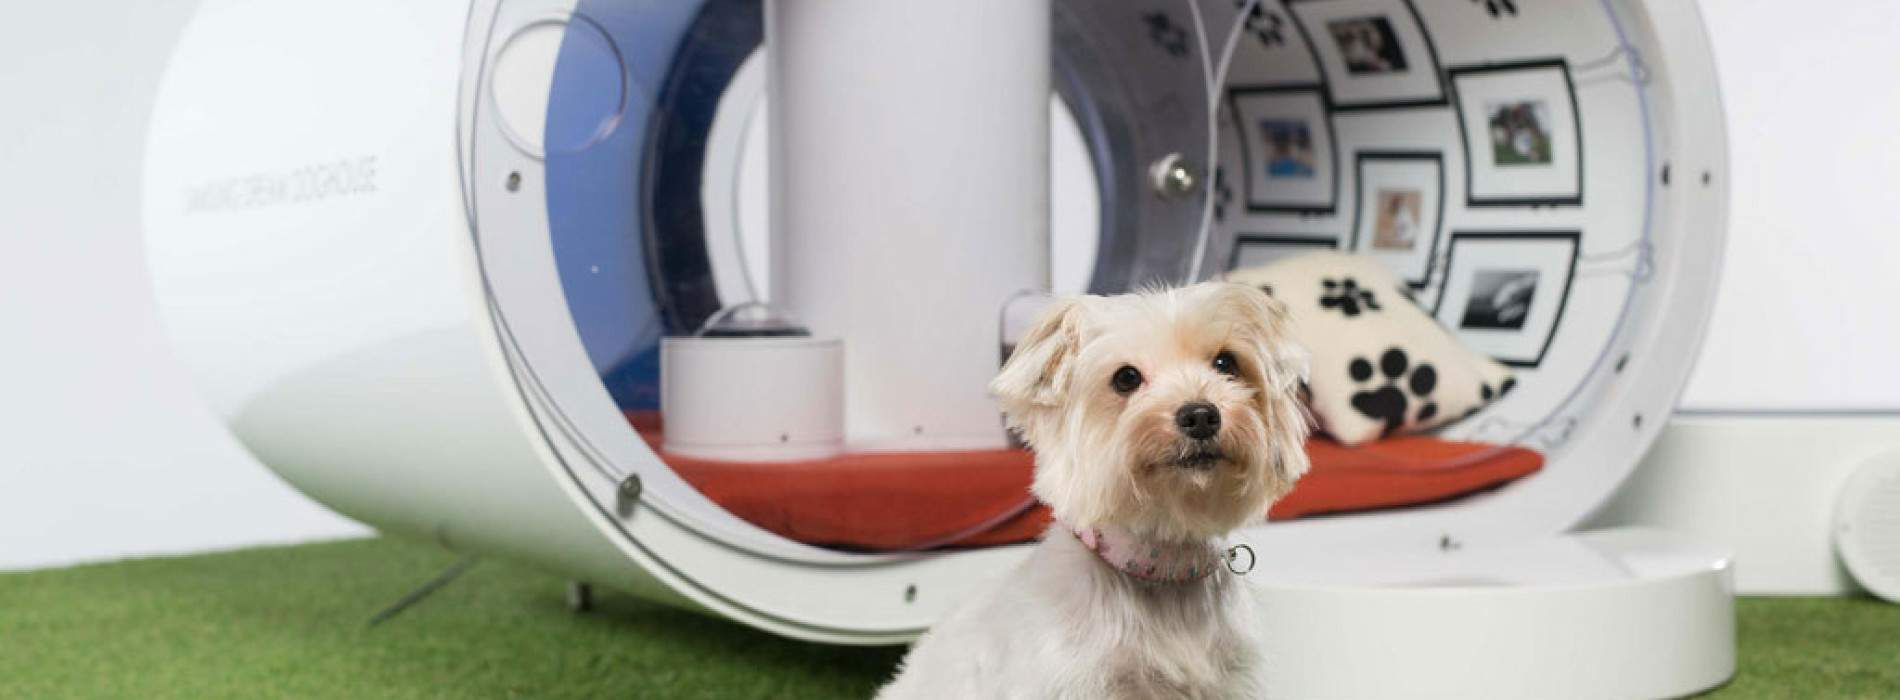 Dream Doghouse: La casa de Samsung para perros